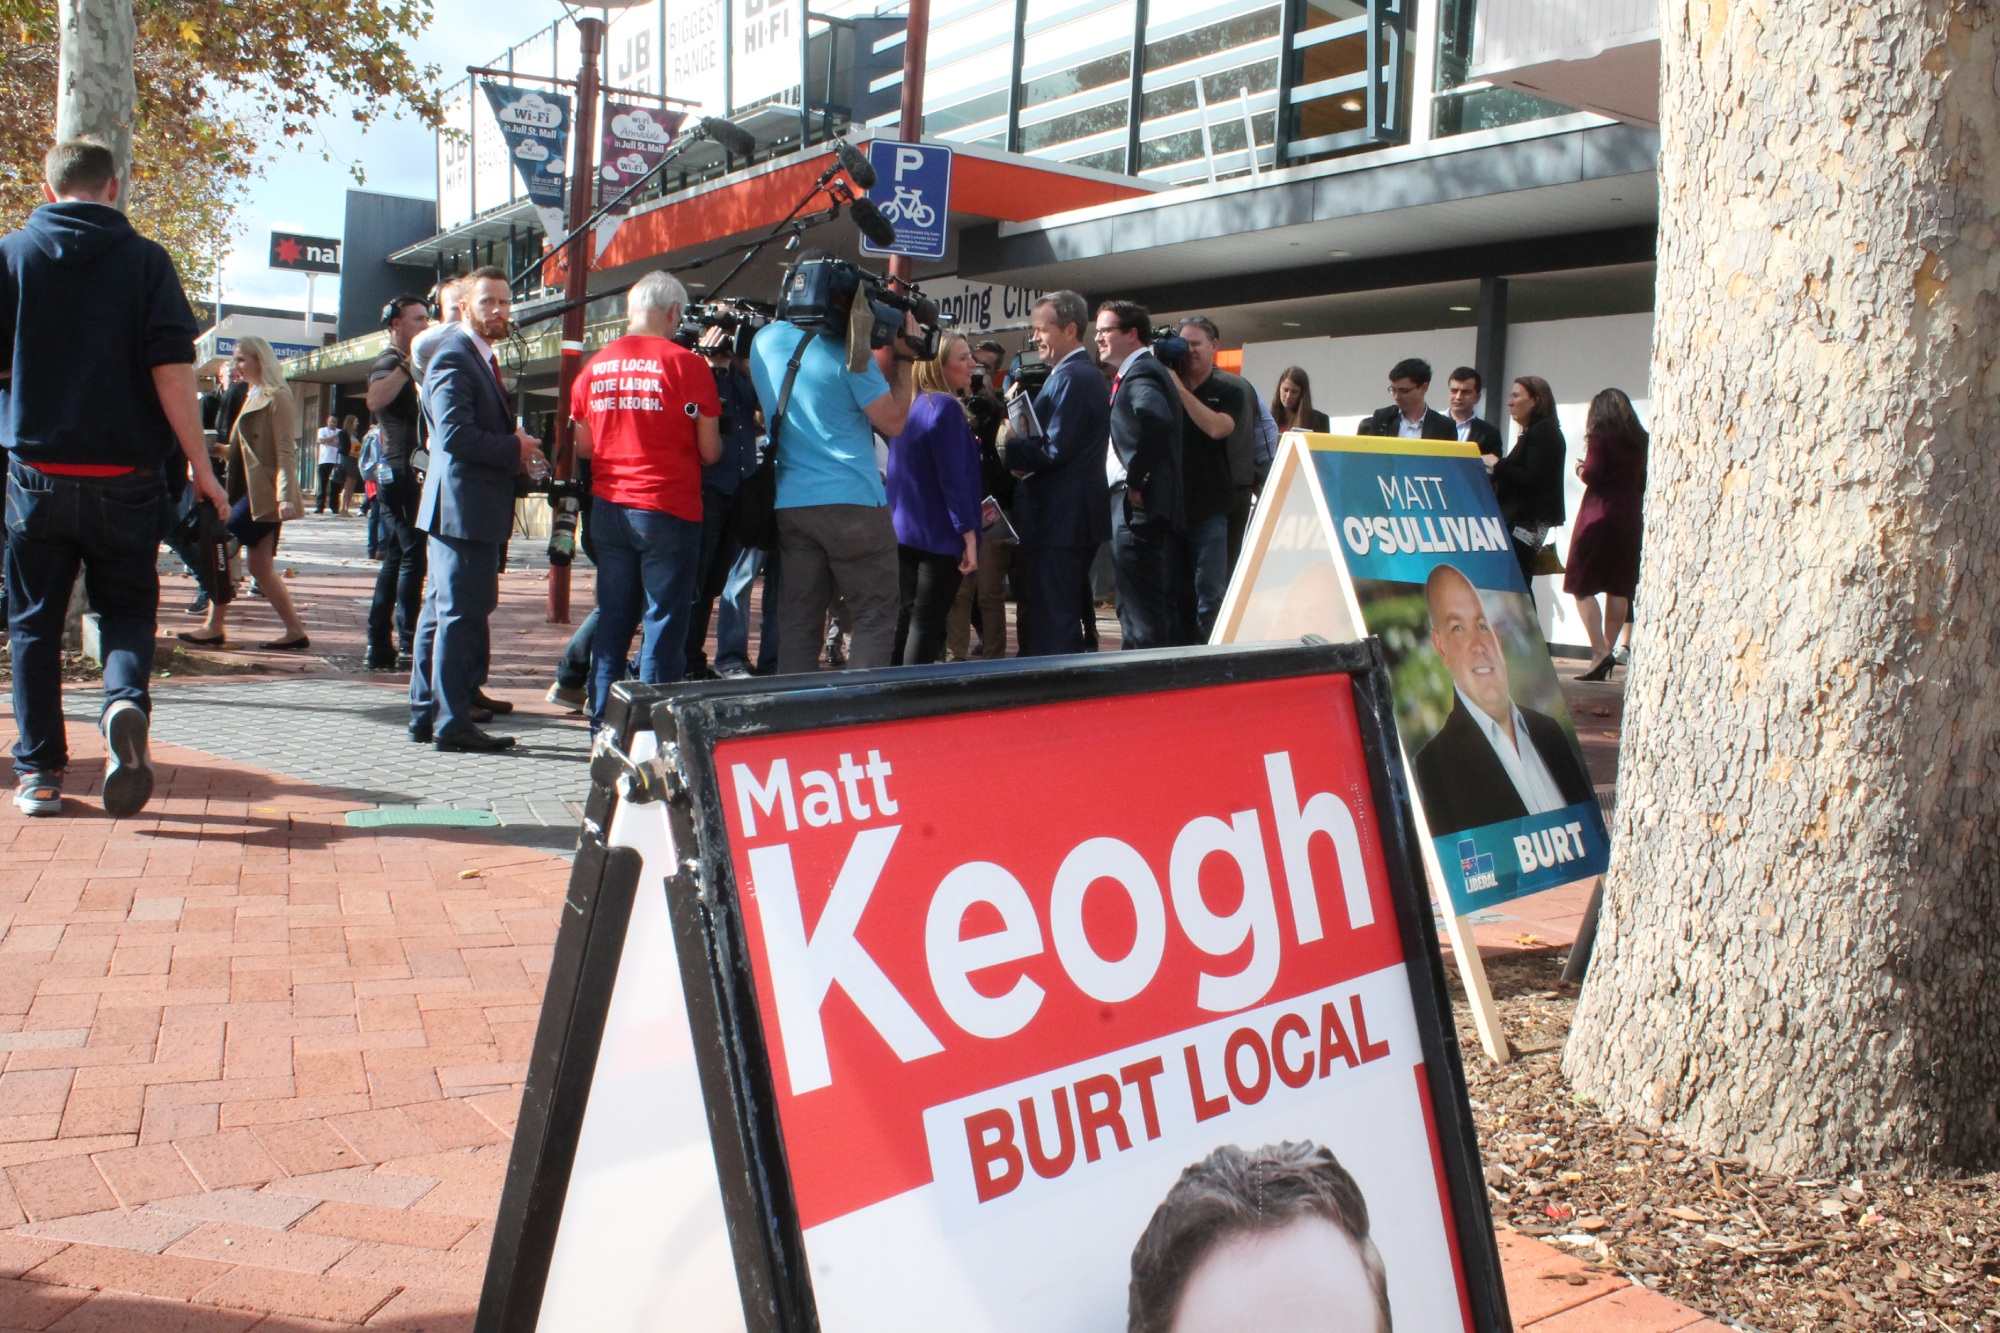 Federal Labor leader Bill Shorten and Burt Labor candidate Matt Keogh in the Jull Street Mall, Armadale.